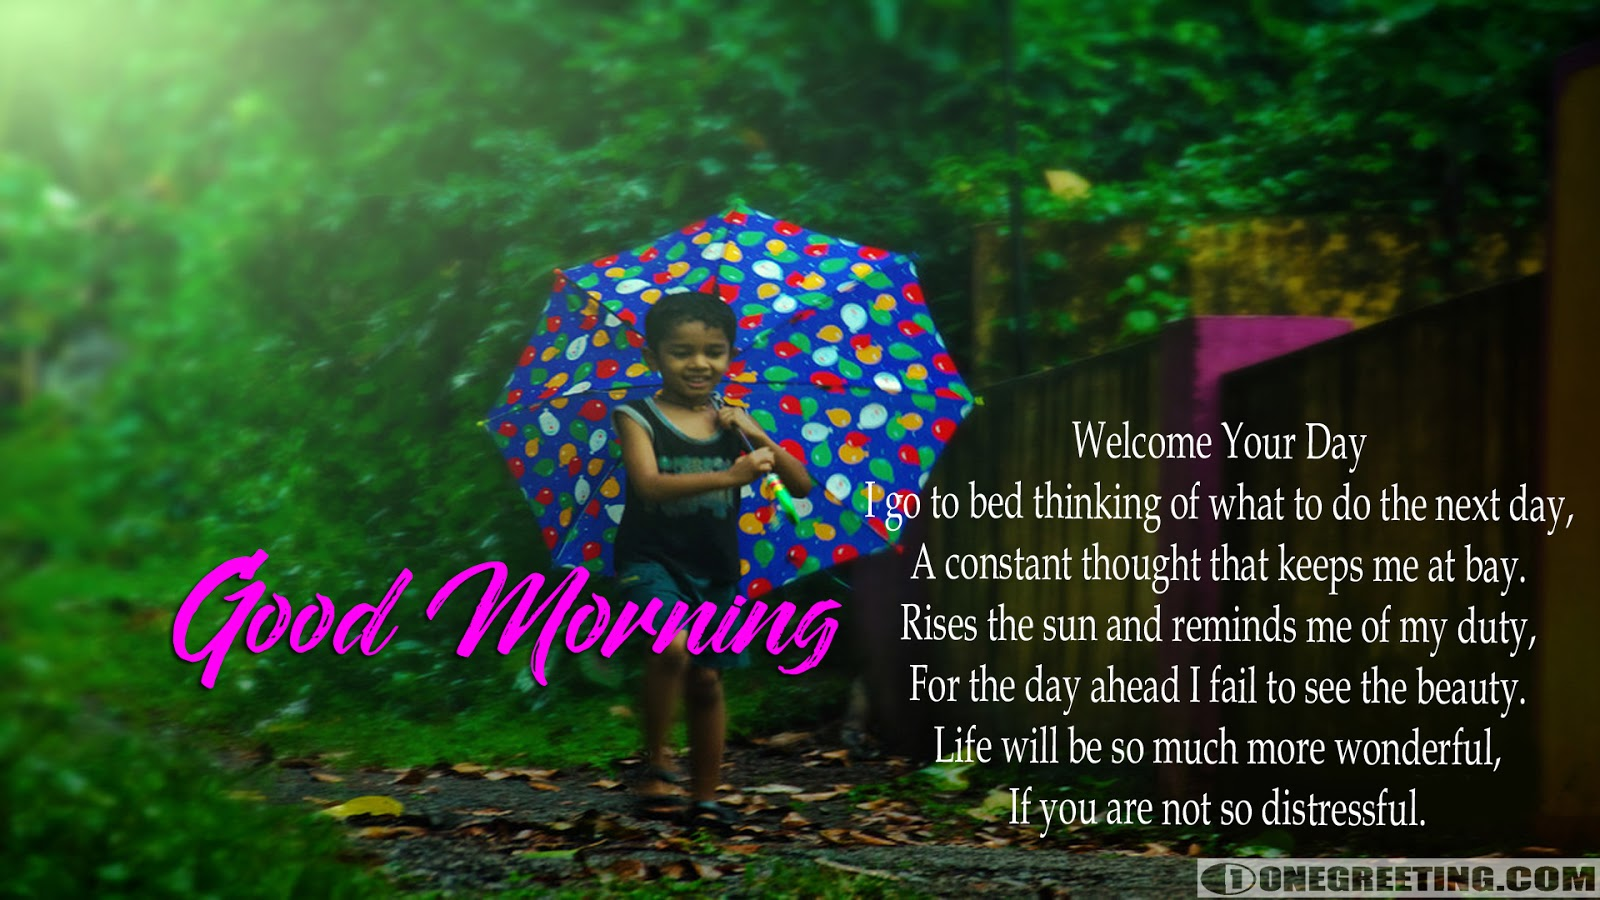 Welcome Your Day Good Morning One Greeting